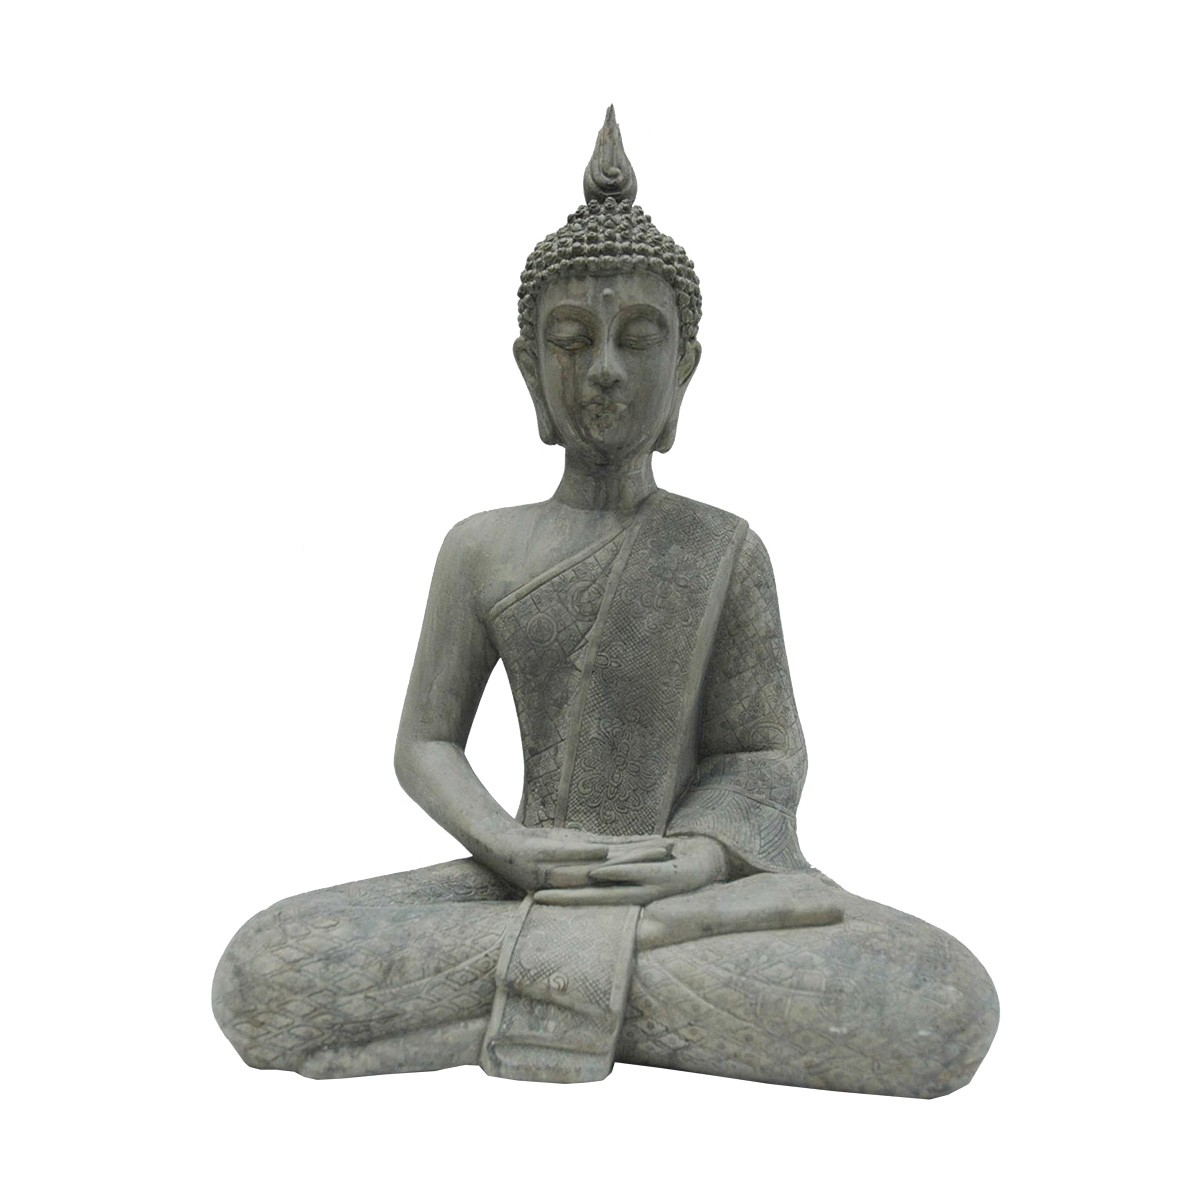 Polyresin Meditation Buddha Statue Decor, Type A